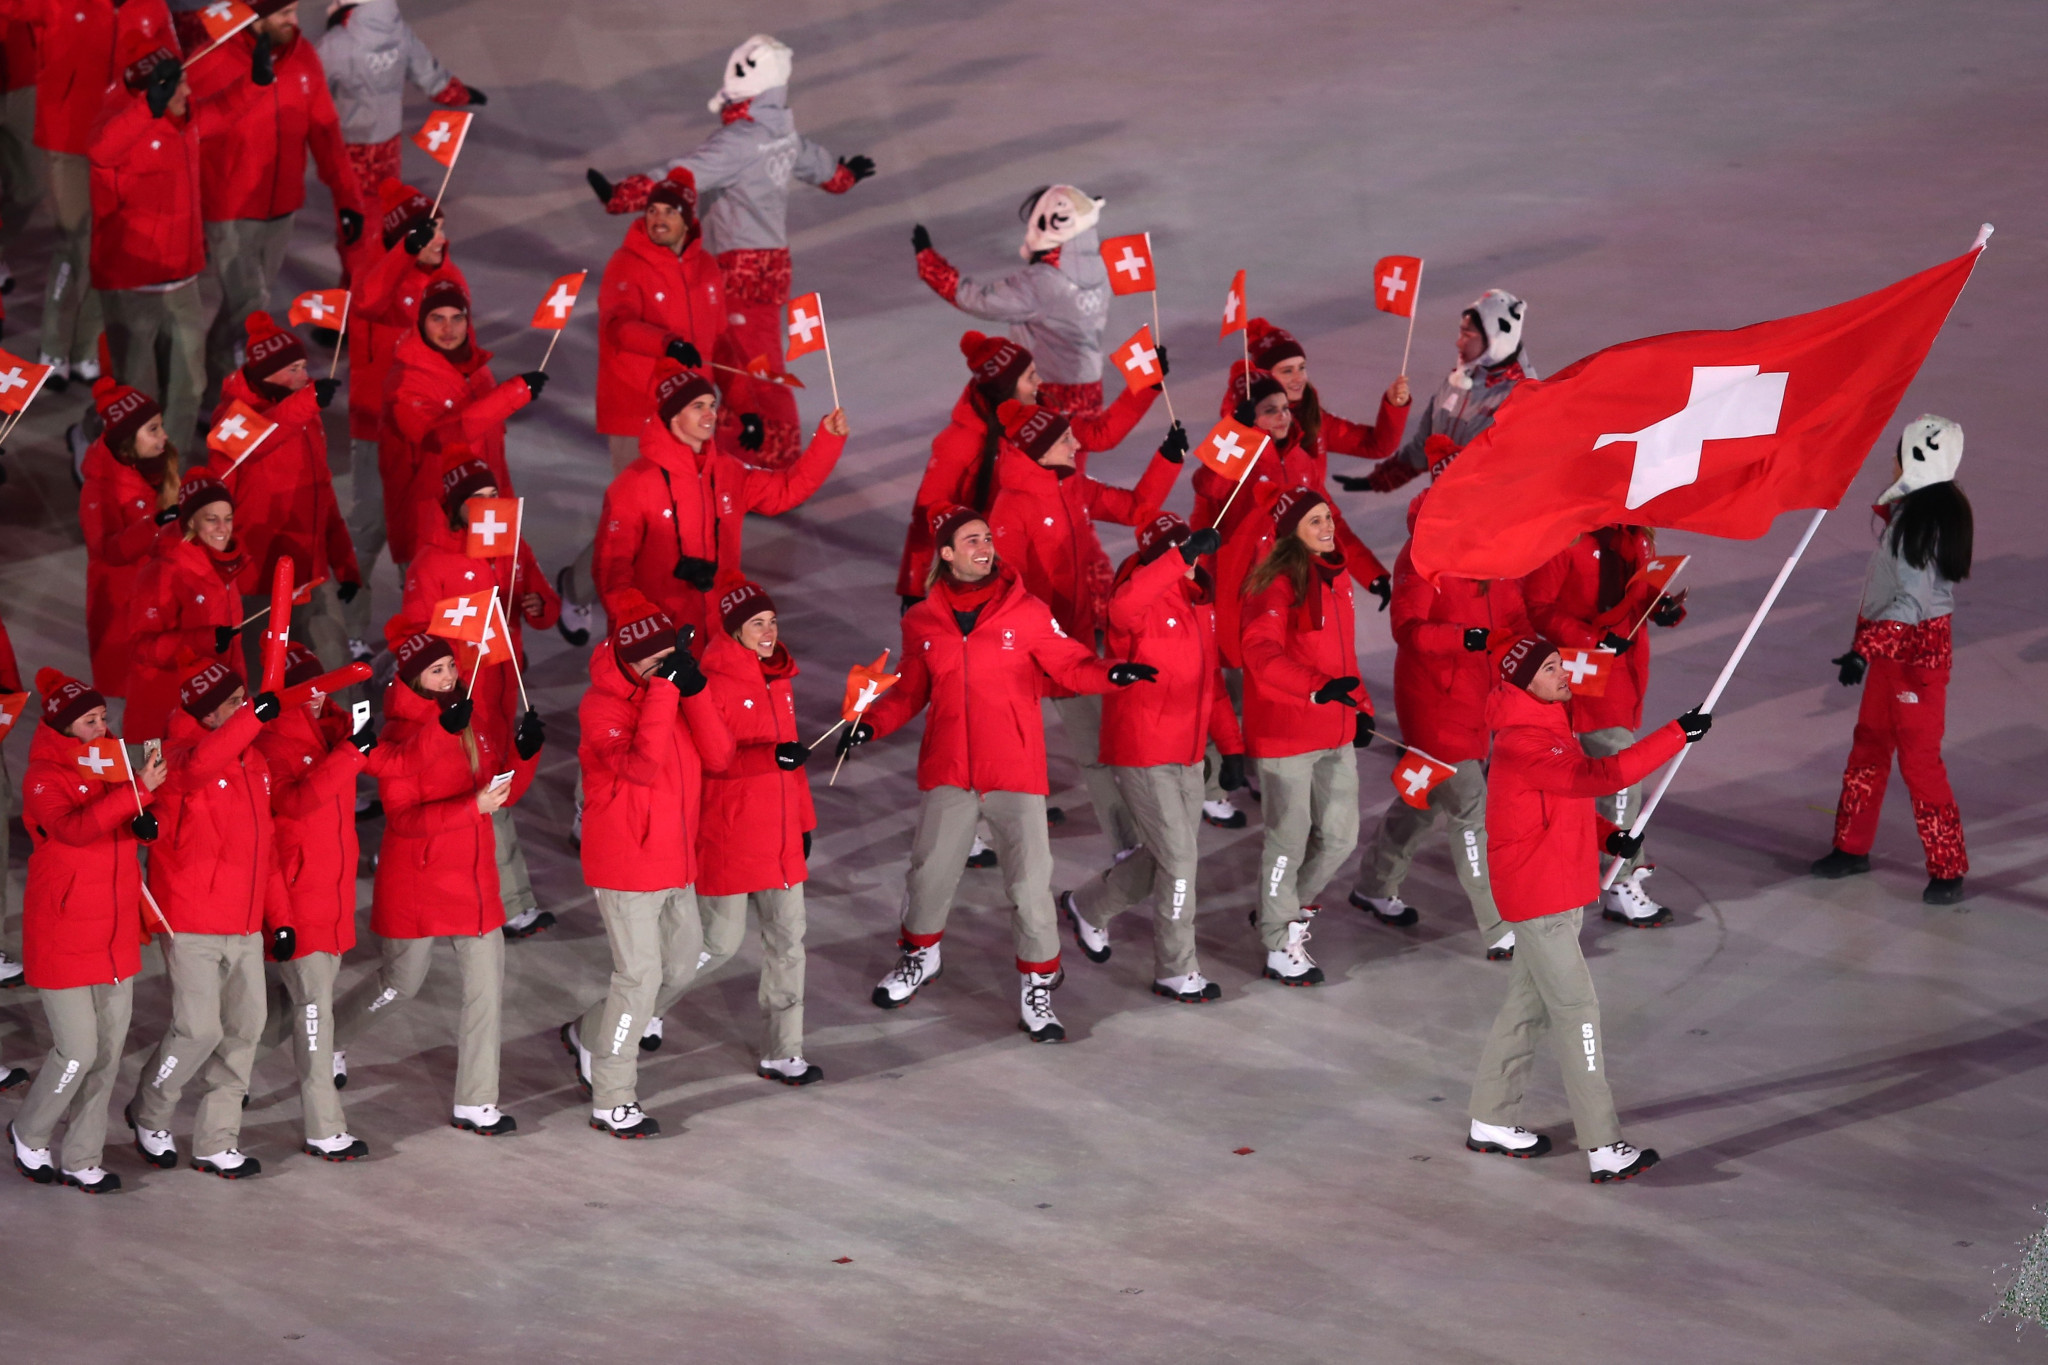 Switzerland's Chef de Mission praises country's performance at Pyeongchang 2018 but admits it was a challenging Games